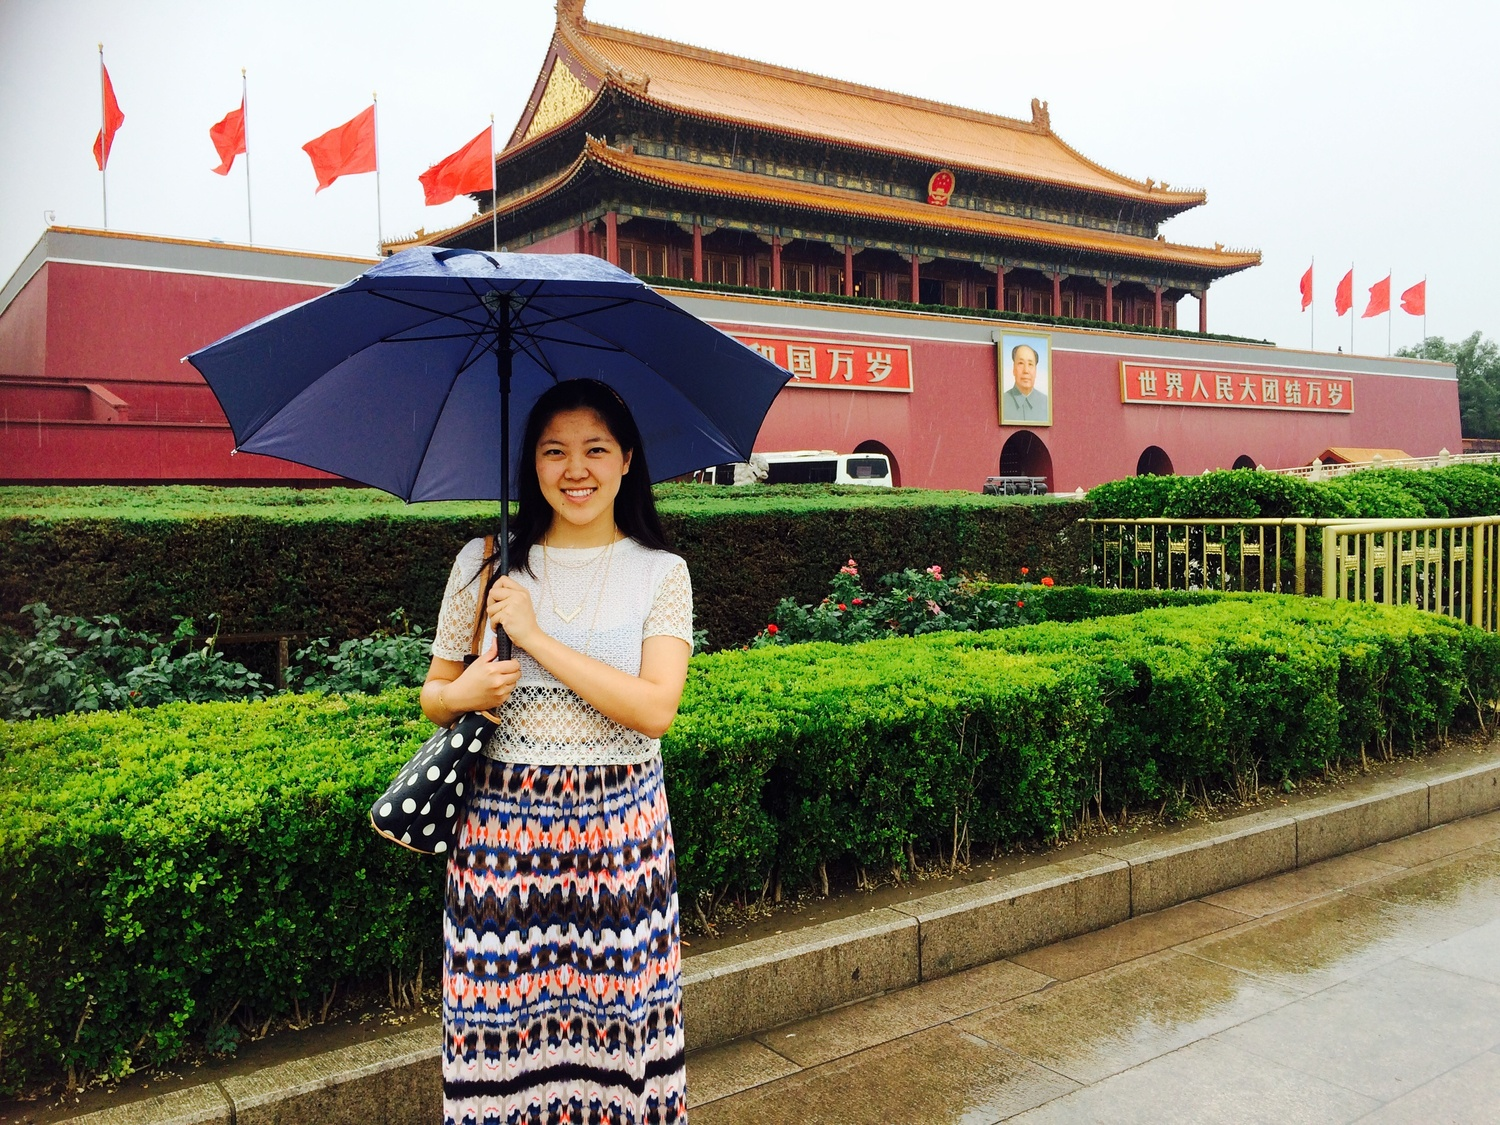 When in Beijing - Published in the Harvard Crimson.